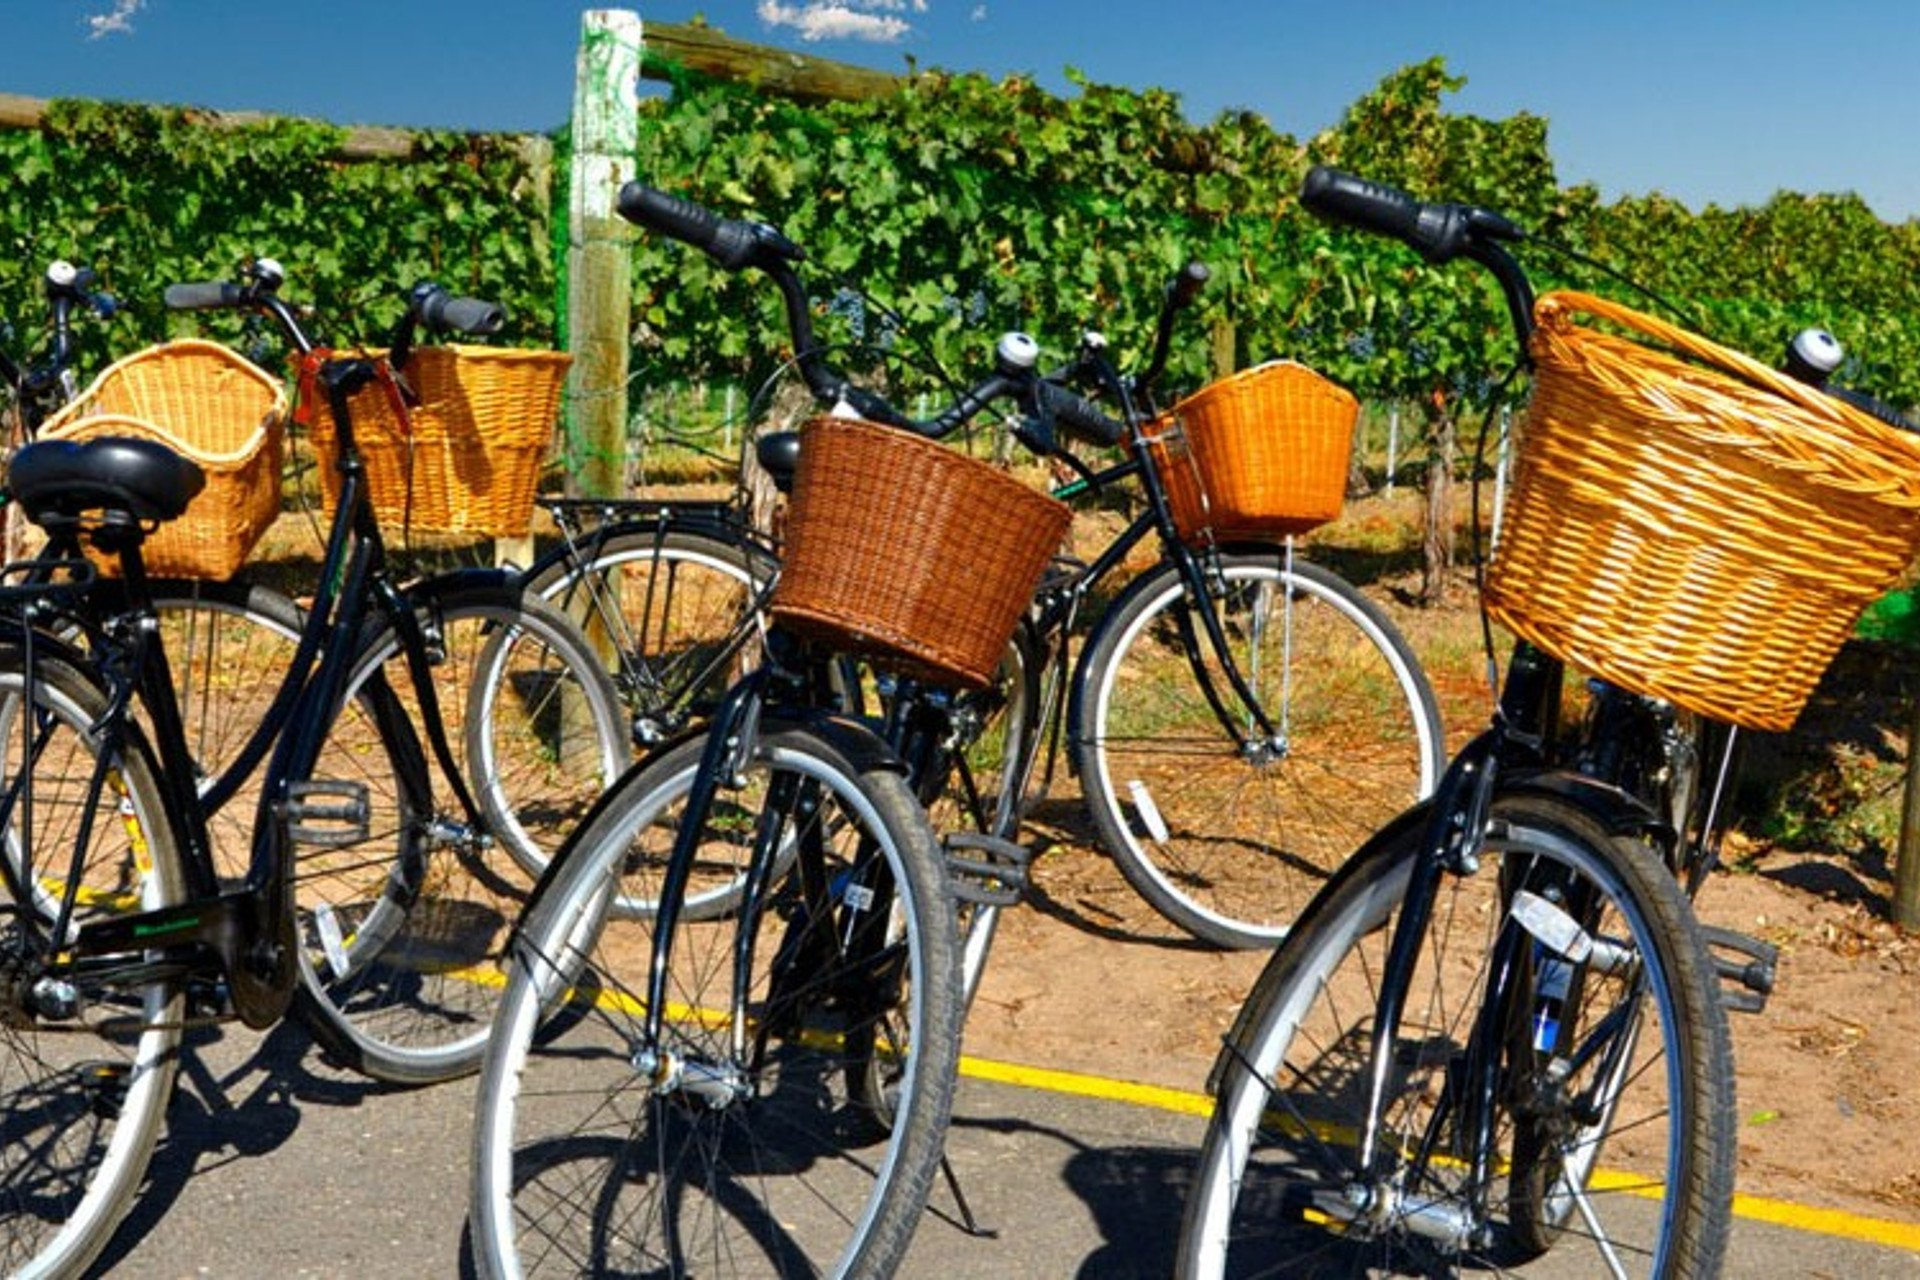 bicycles with wooden baskets in wineyards